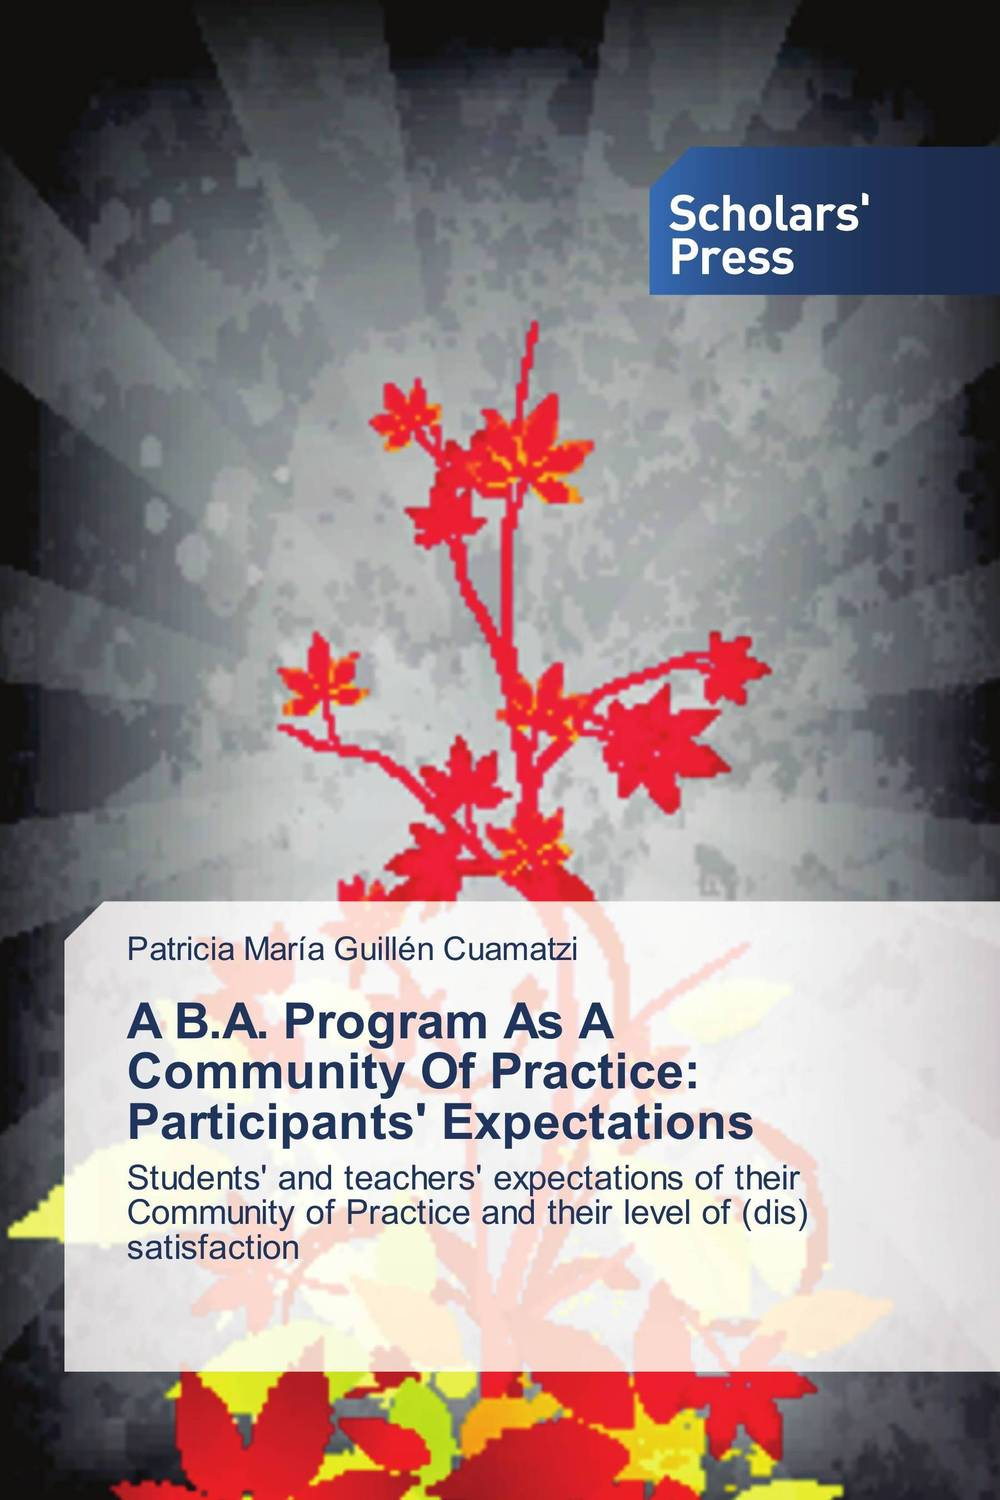 A B.A. Program As A Community Of Practice: Participants' Expectations the role of evaluation as a mechanism for advancing principal practice